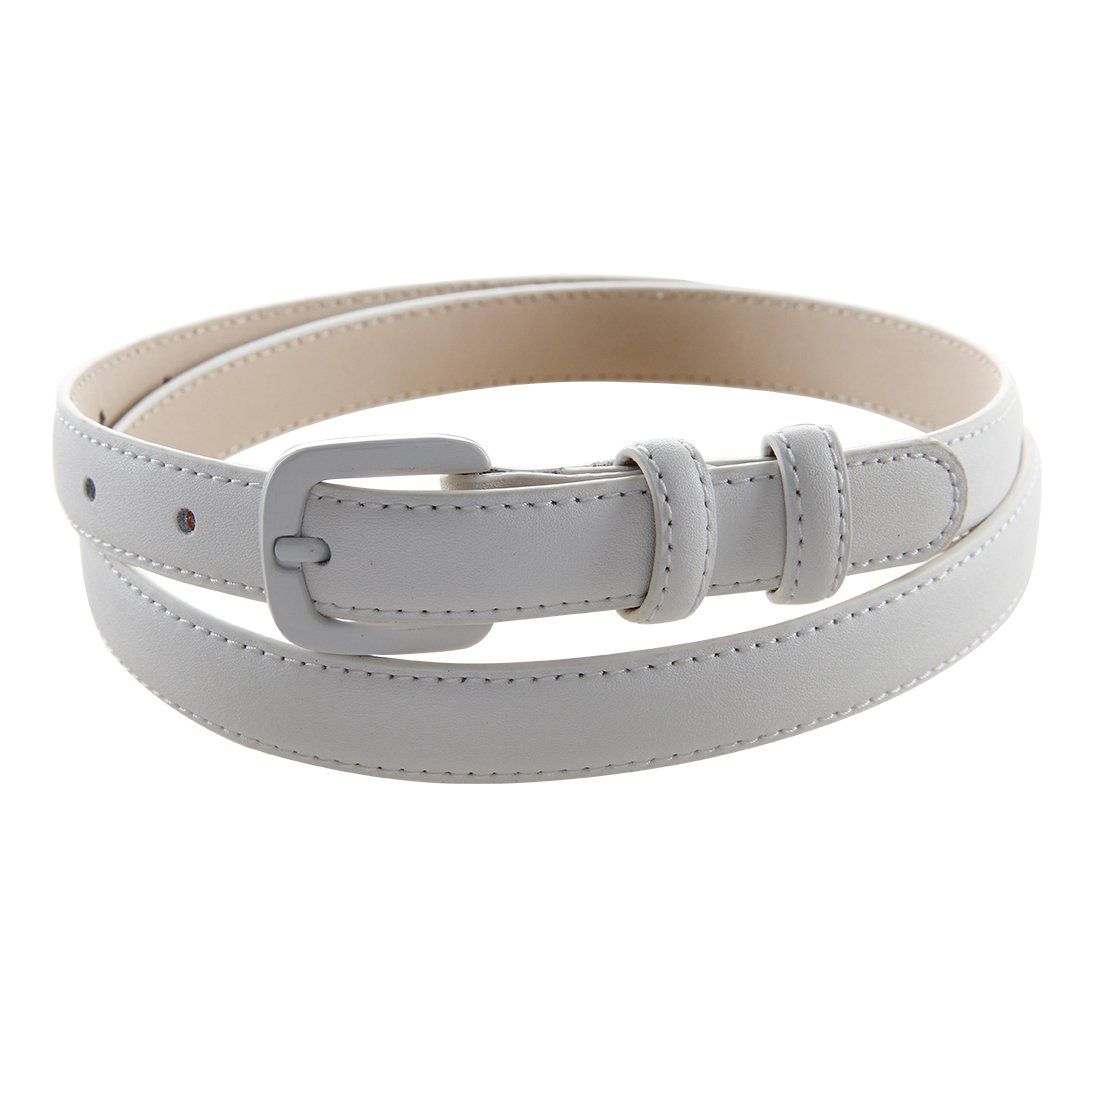 Bpstar Womens Skinny Leather Belt Solid Color with Pin Buckle Simple Waist Belts